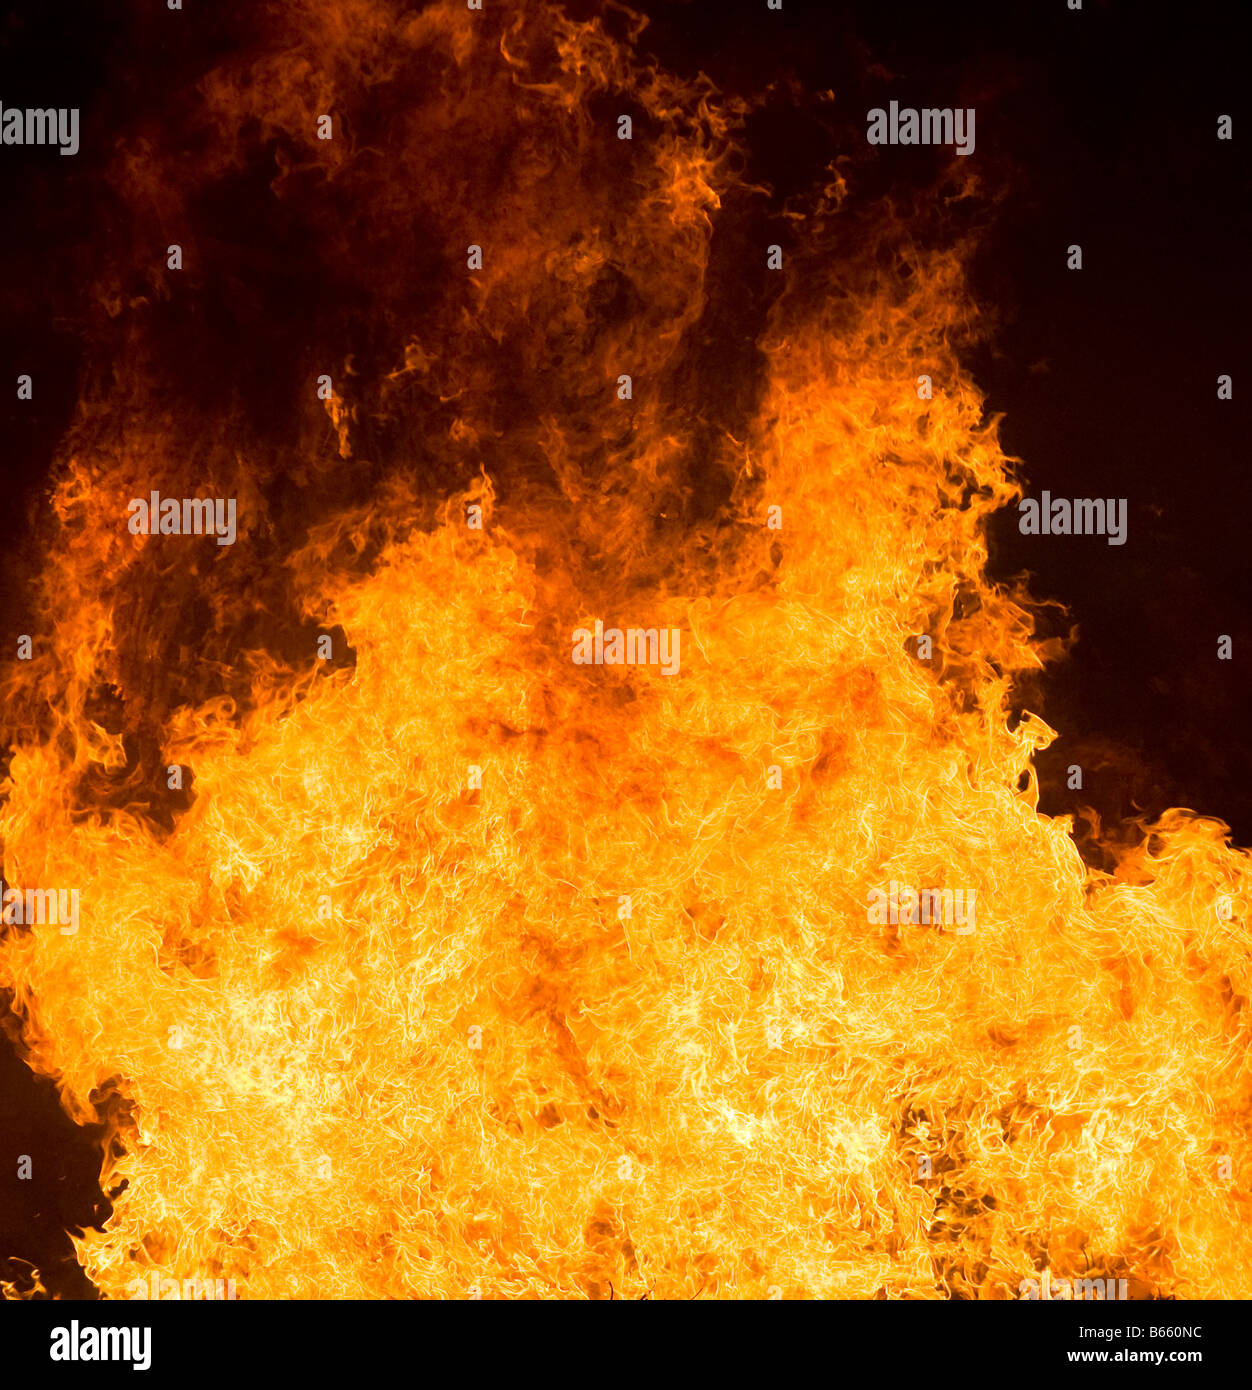 highly detailed abstract fire background - Stock Image